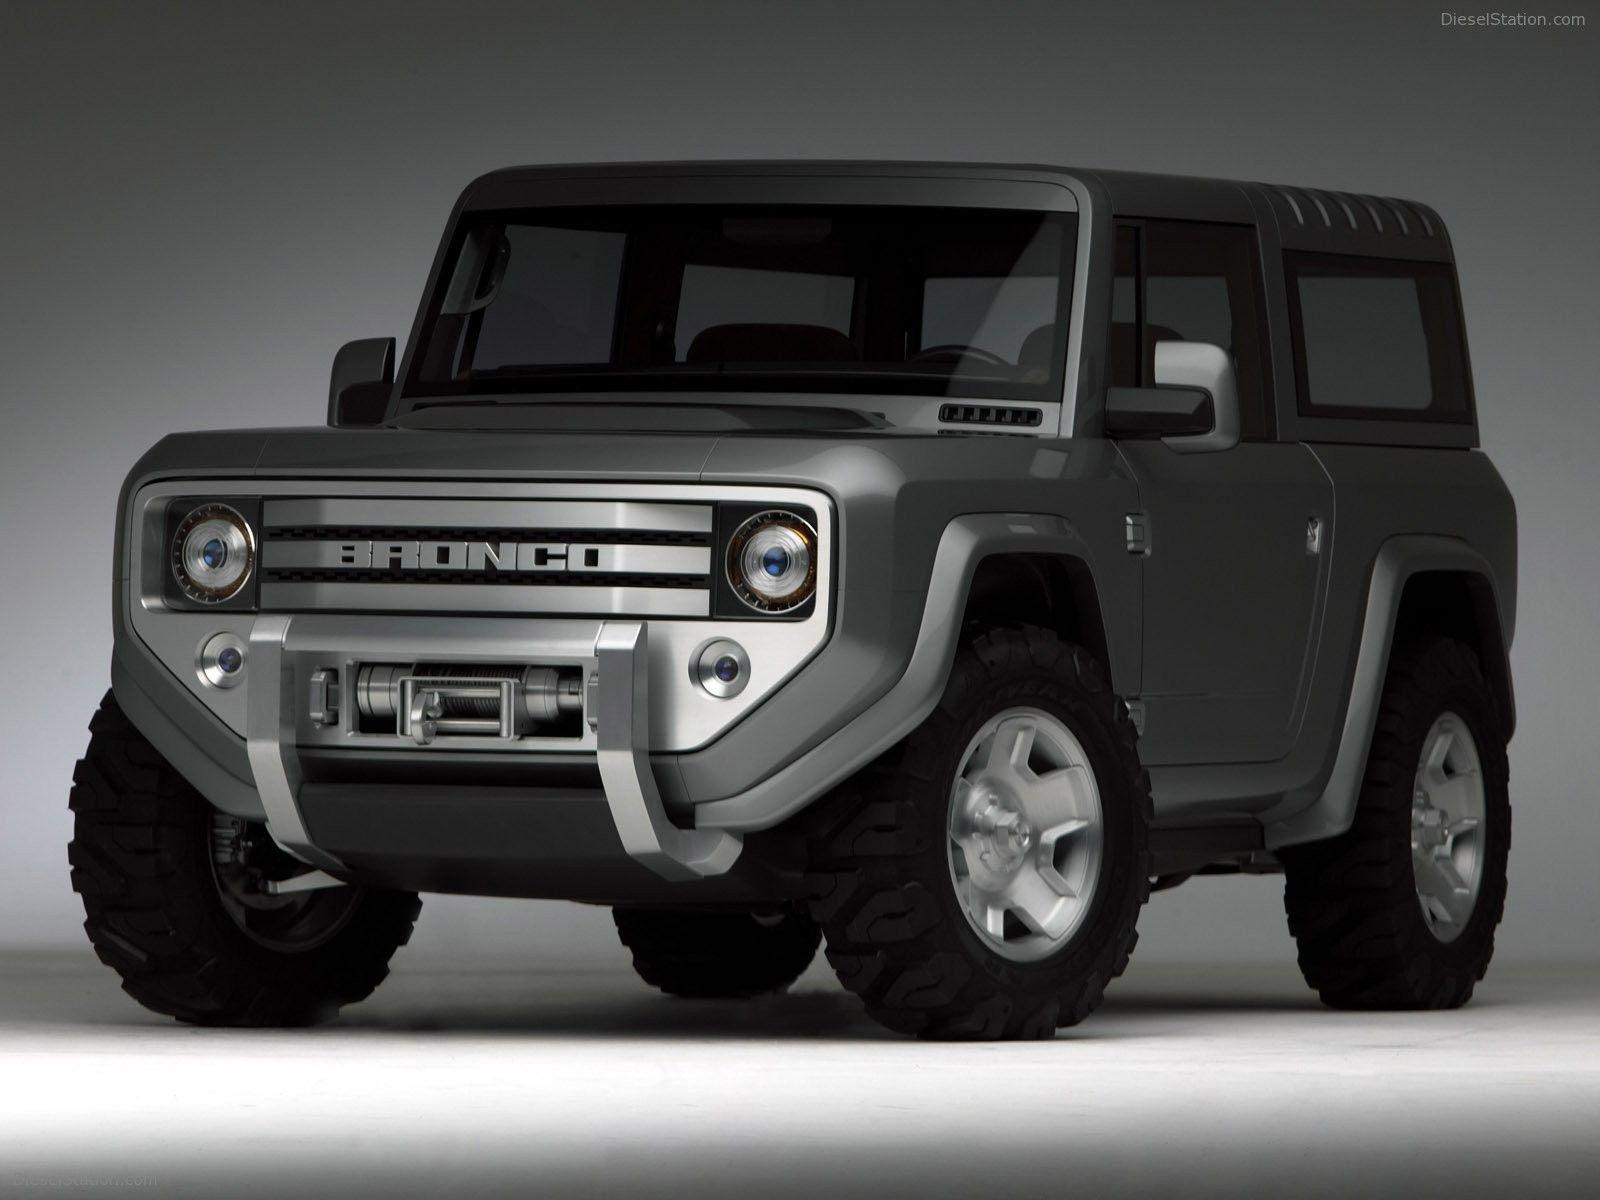 Ford Bronco Wallpaper HD Image Picture 2015 #6985691